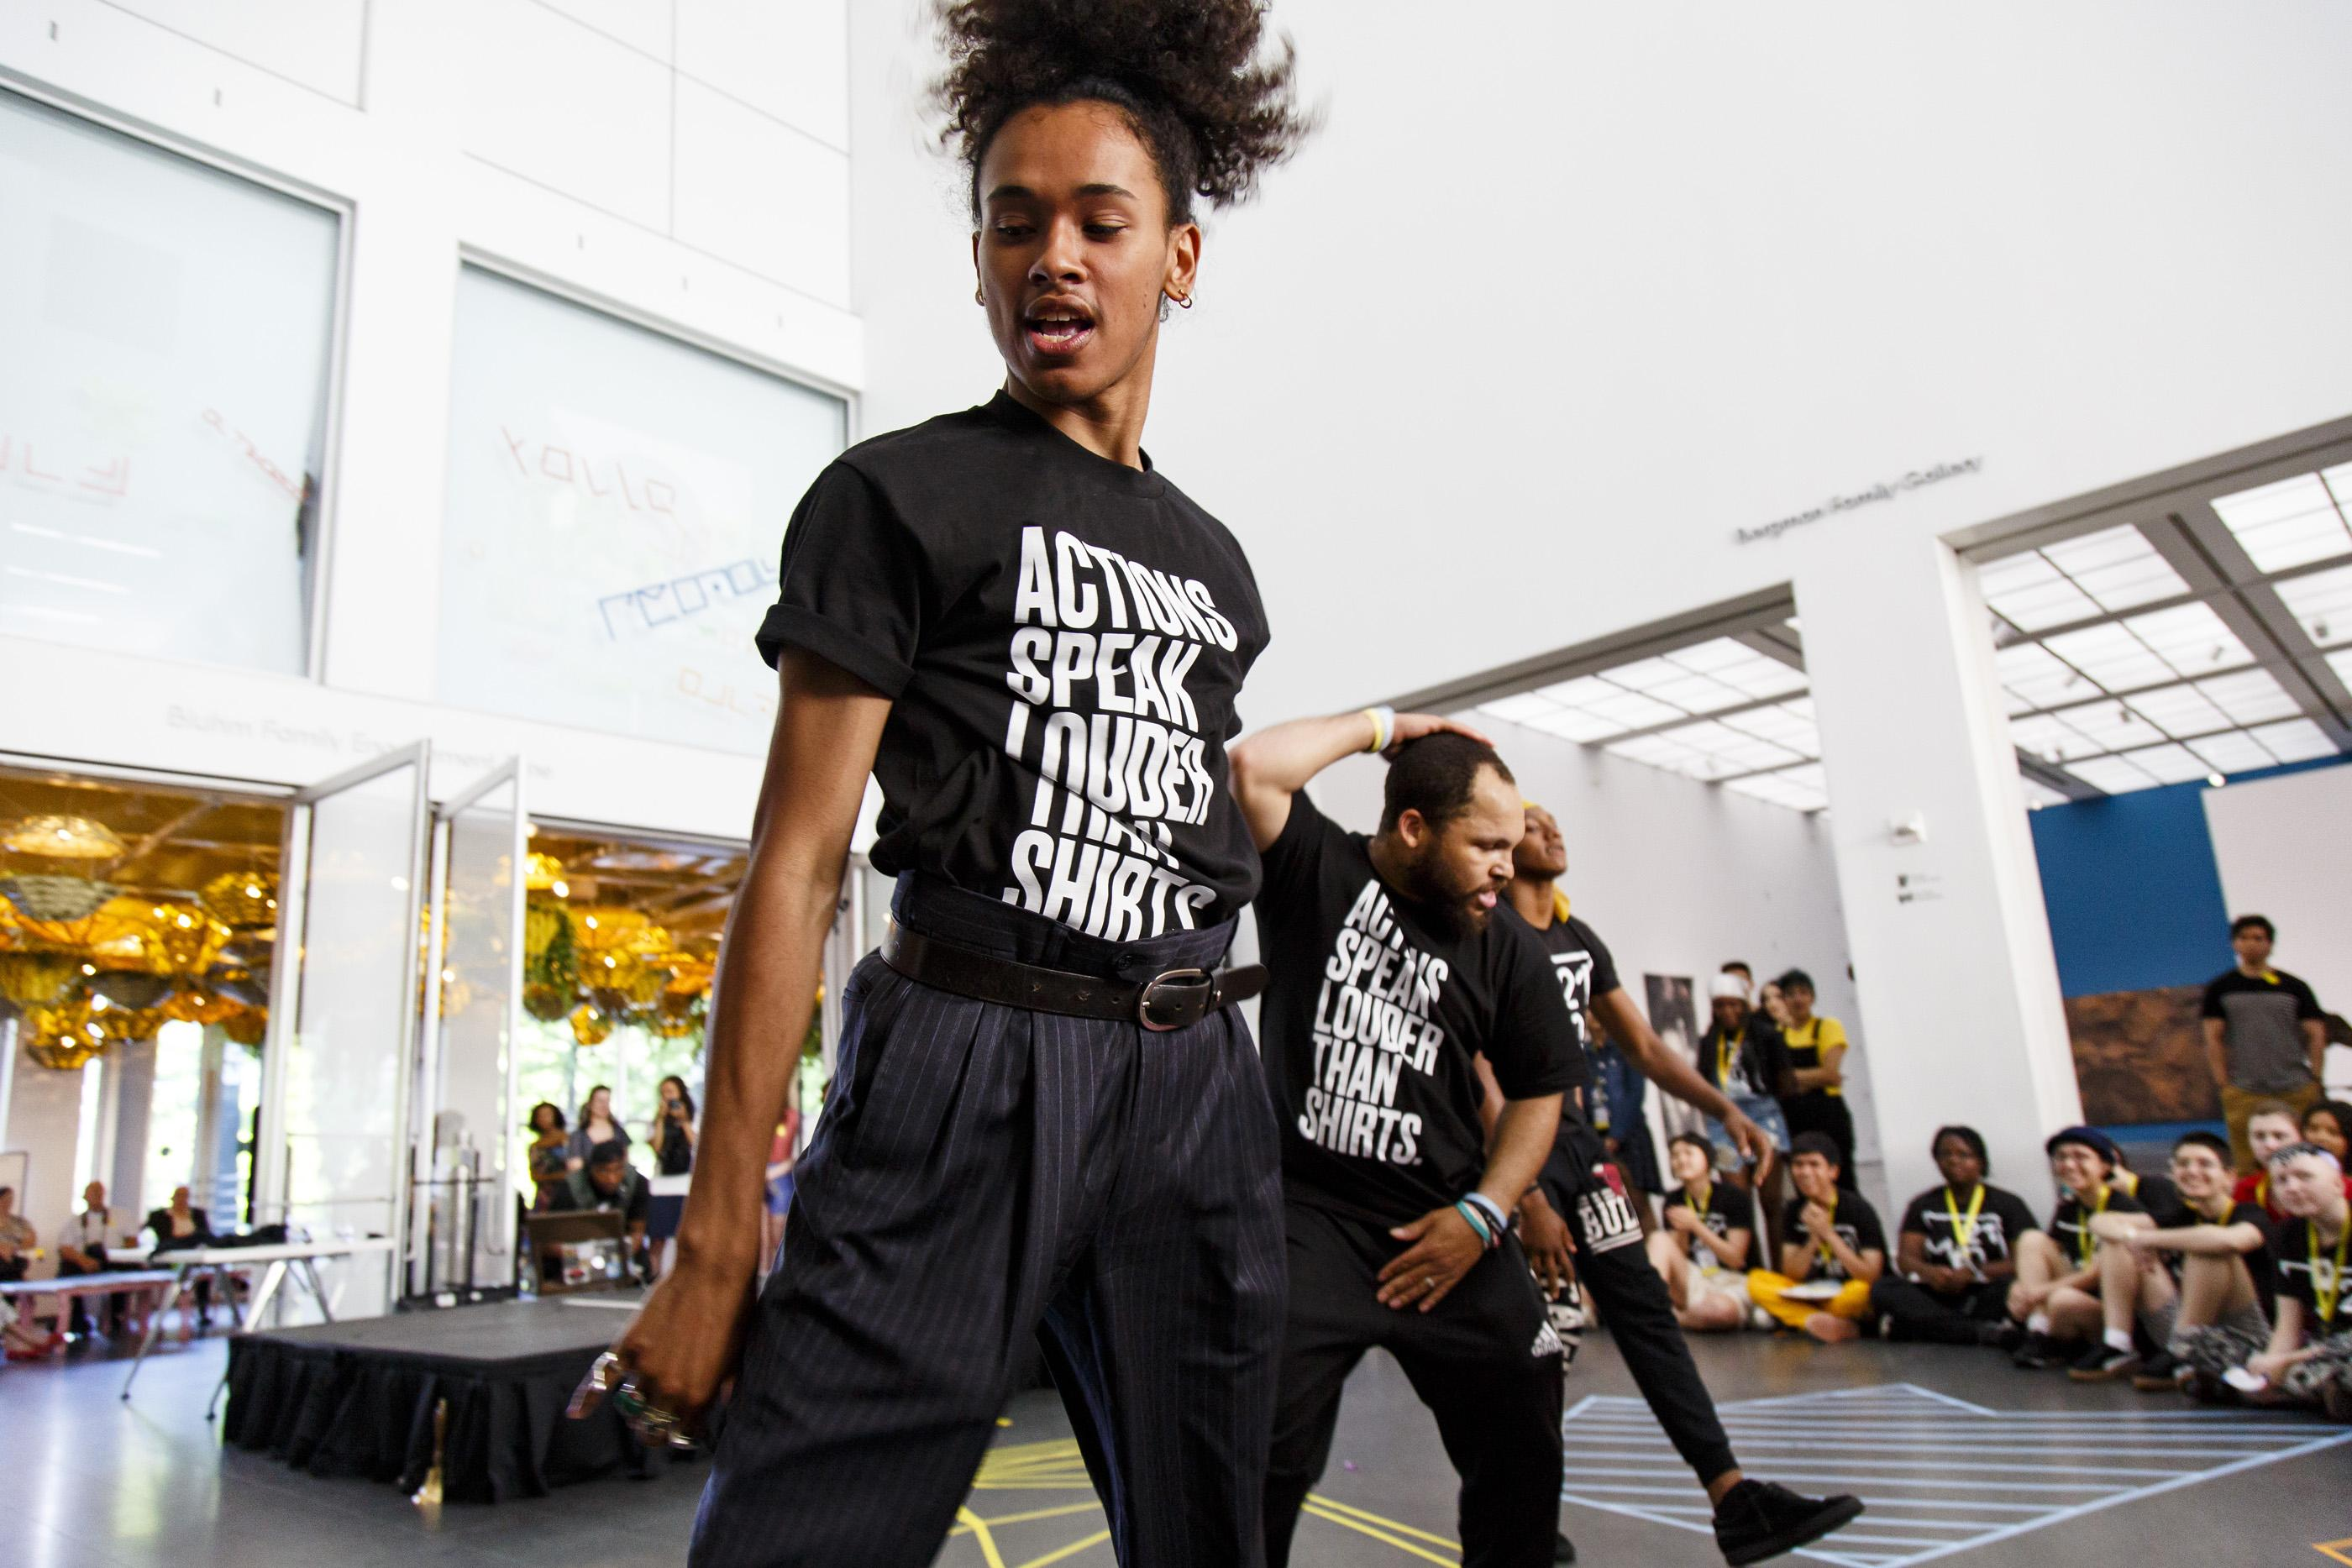 Three dancers perform in the MCA Atrium as dozens of audience members watch.